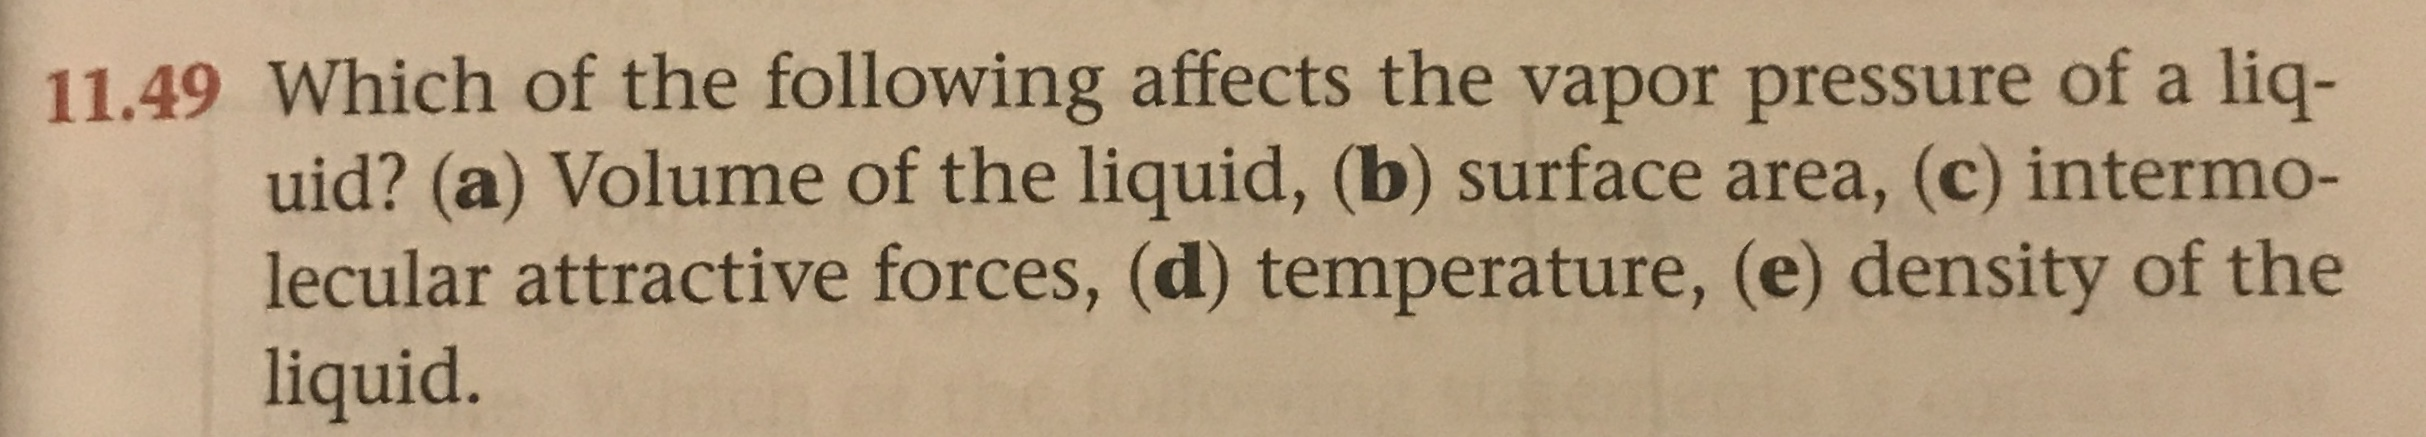 11.49 Which of the following affects the vapor pressure of a liq- uid? (a) Volume of the liquid, (b) surface area, (c) intermo- lecular attractive forces, (d) temperature, (e) density of the liquid.